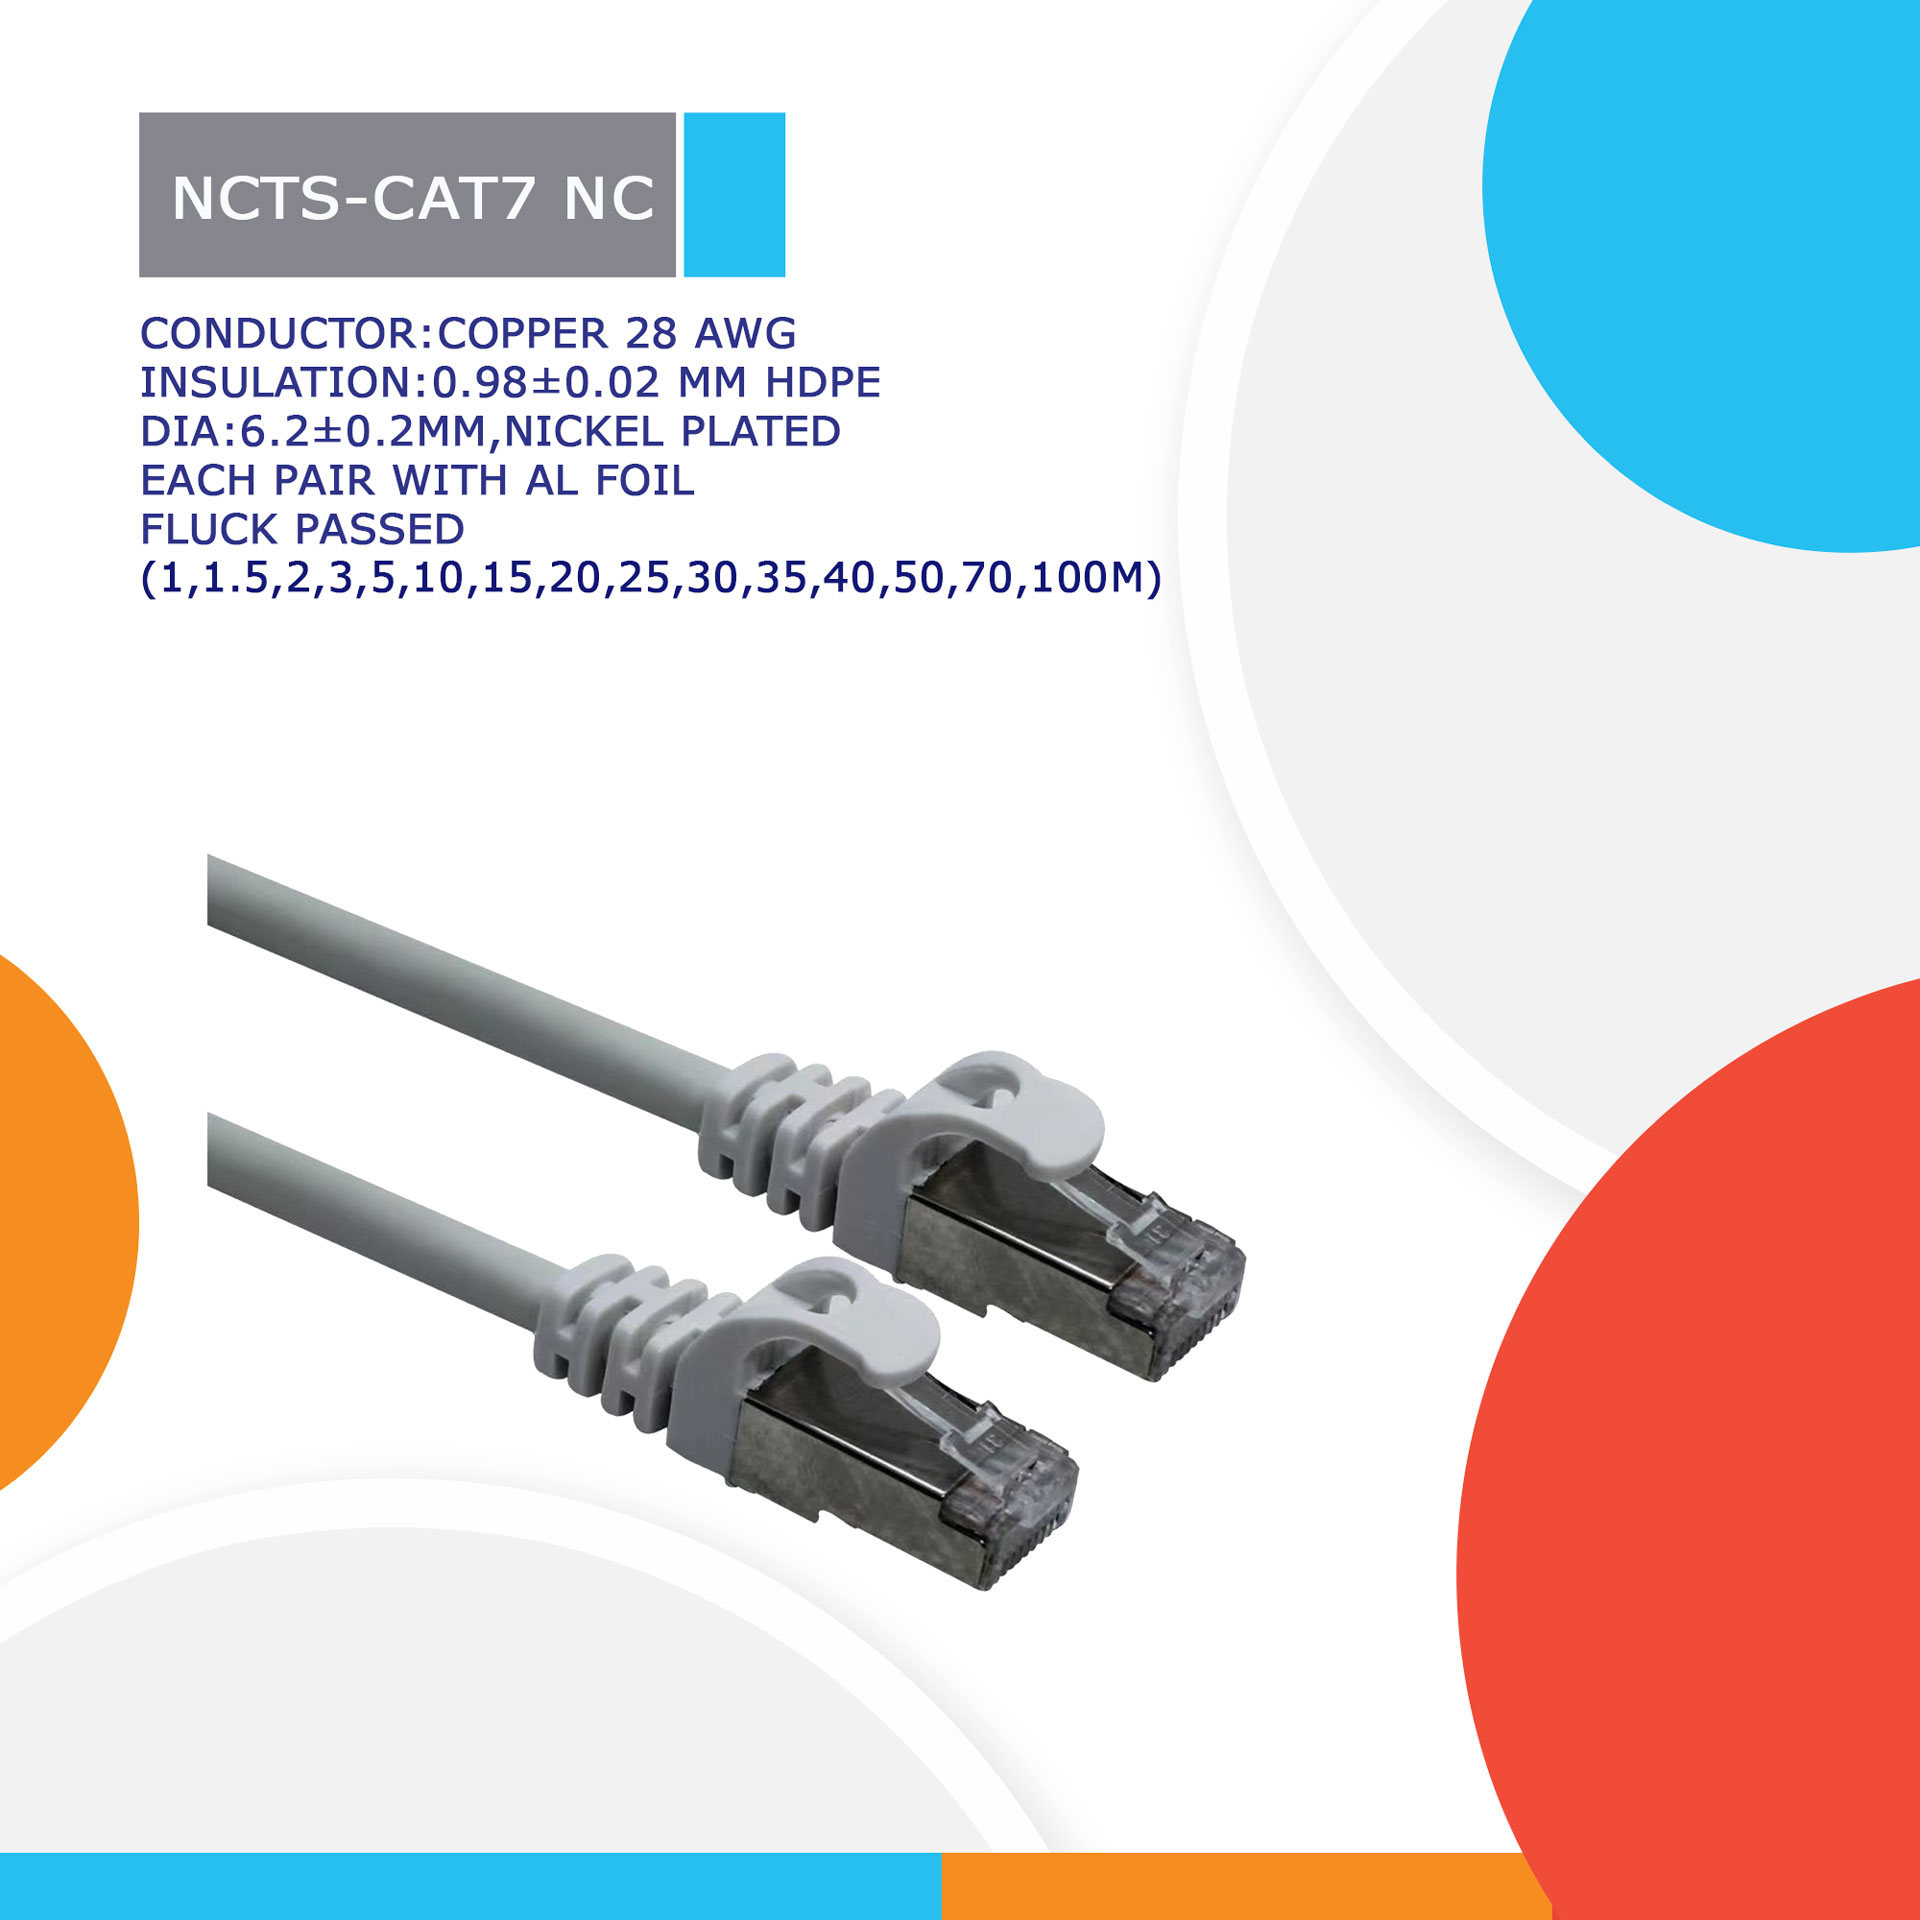 NCTS-CAT7-NC